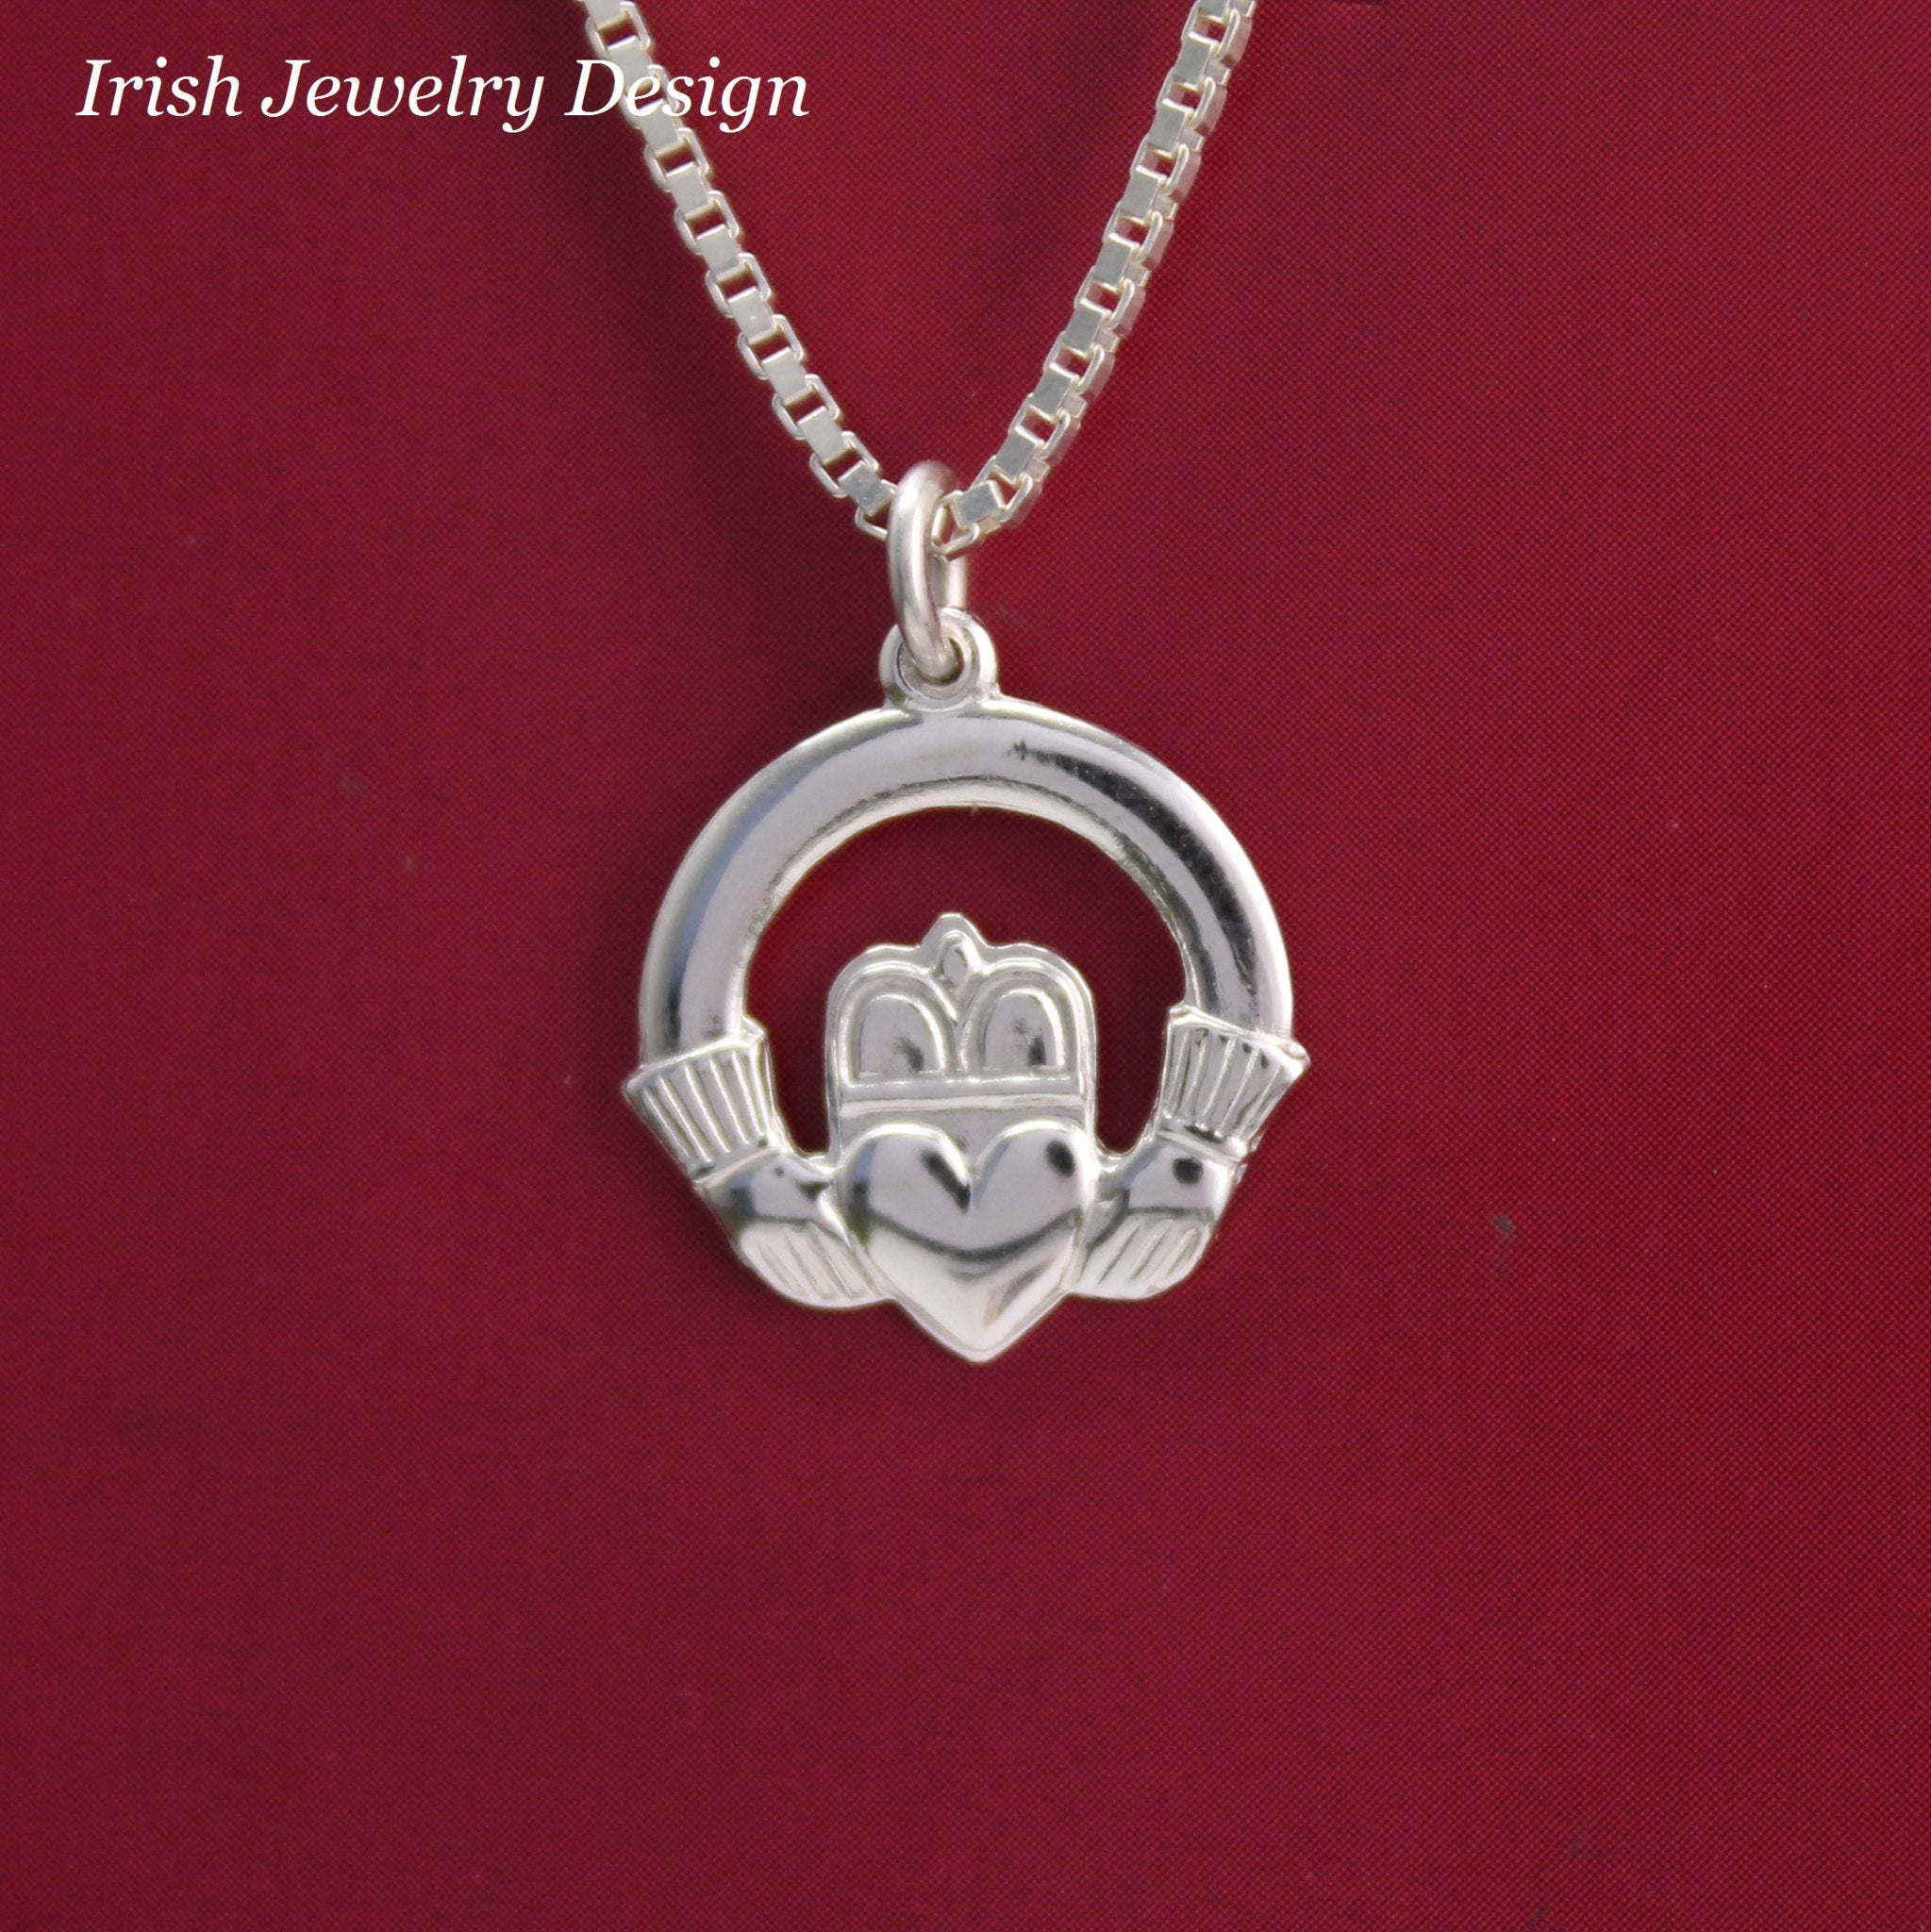 celtic leaf pendant necklace stainless steel three design clover